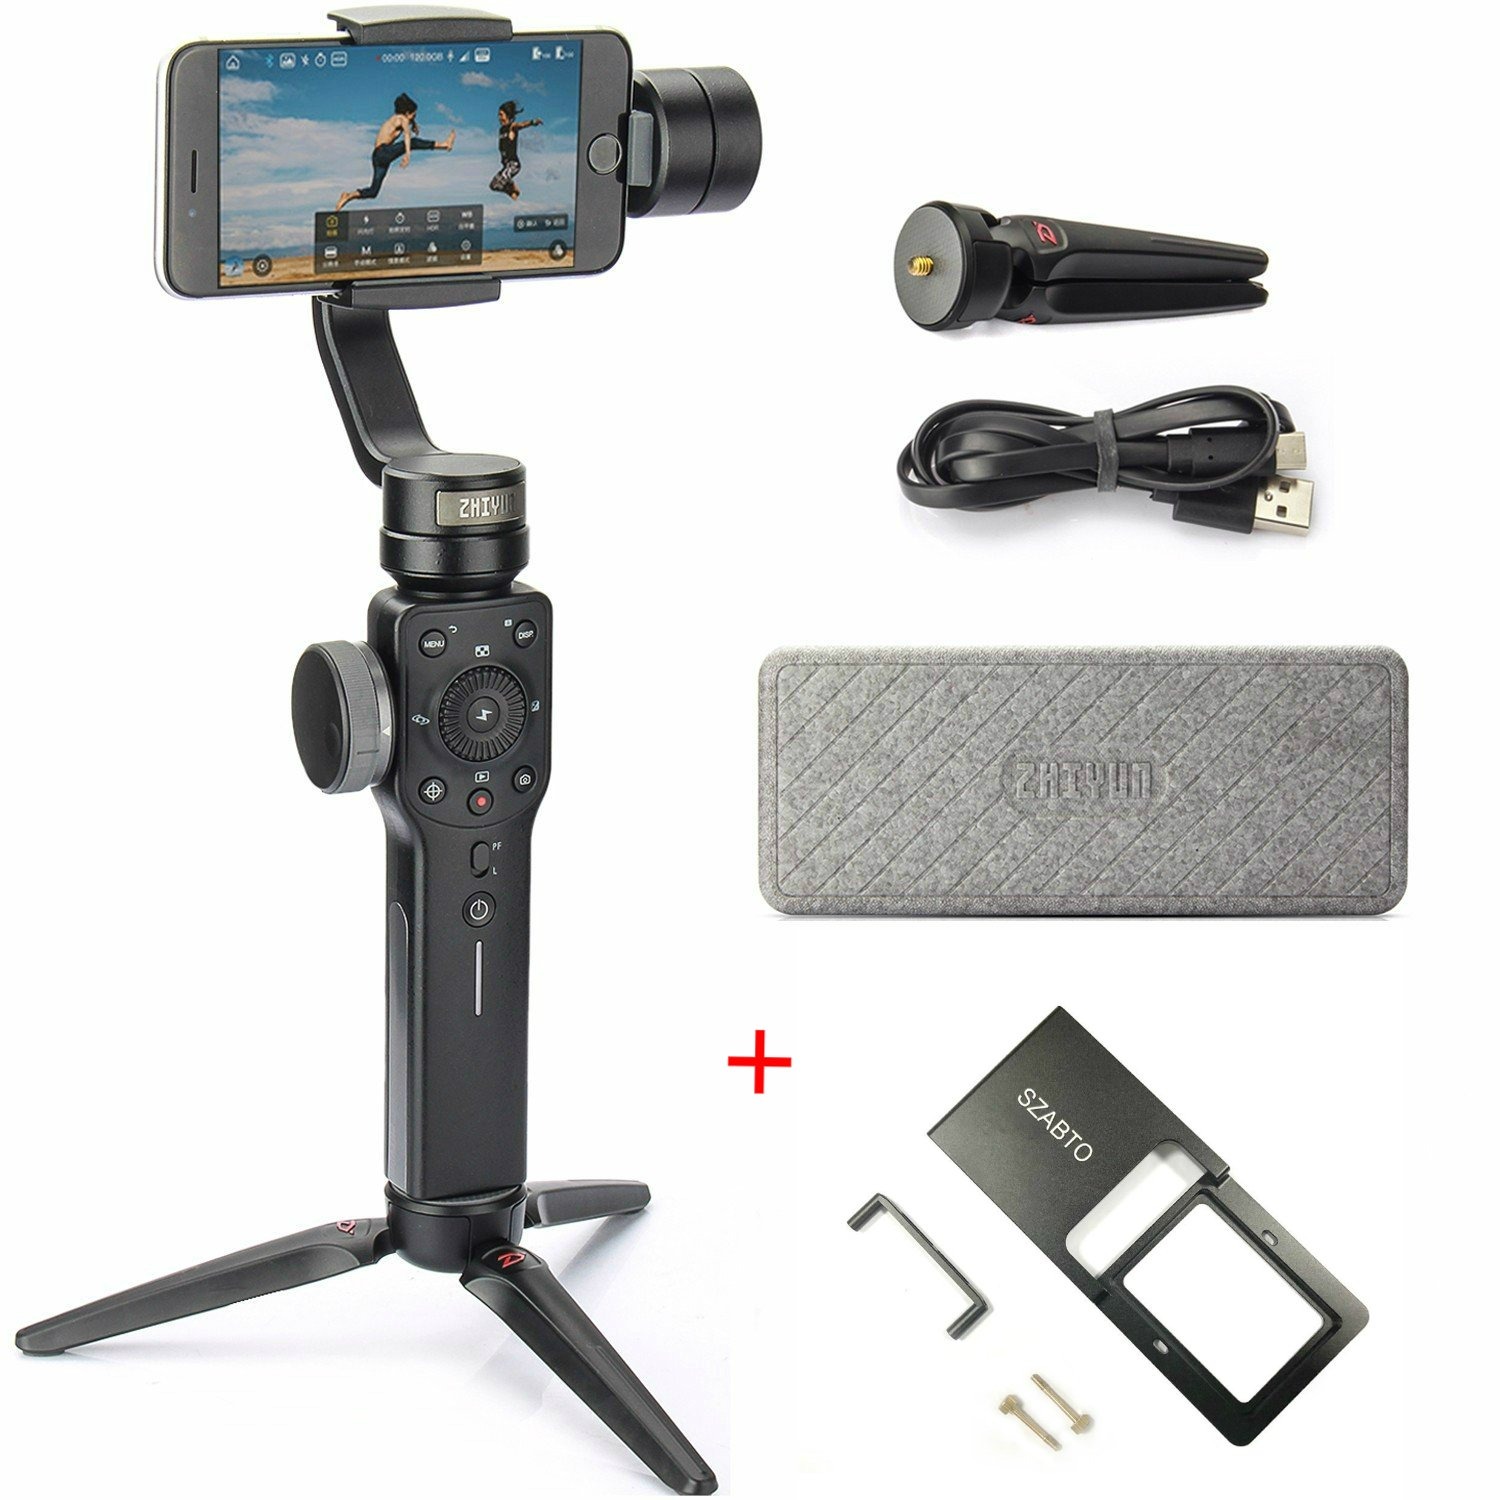 Zhiyun Smooth 4 3 Axis Handheld Gimbal Stabilizer for Smartphone Like iPhone X 8 7 6 Plus Samsung Galaxy S9 S8, GoPro Hero 6 5, SJCAM Xiaomi, 12H Runtime(Smooth Q Upgrade Version + Action Camera Mount)